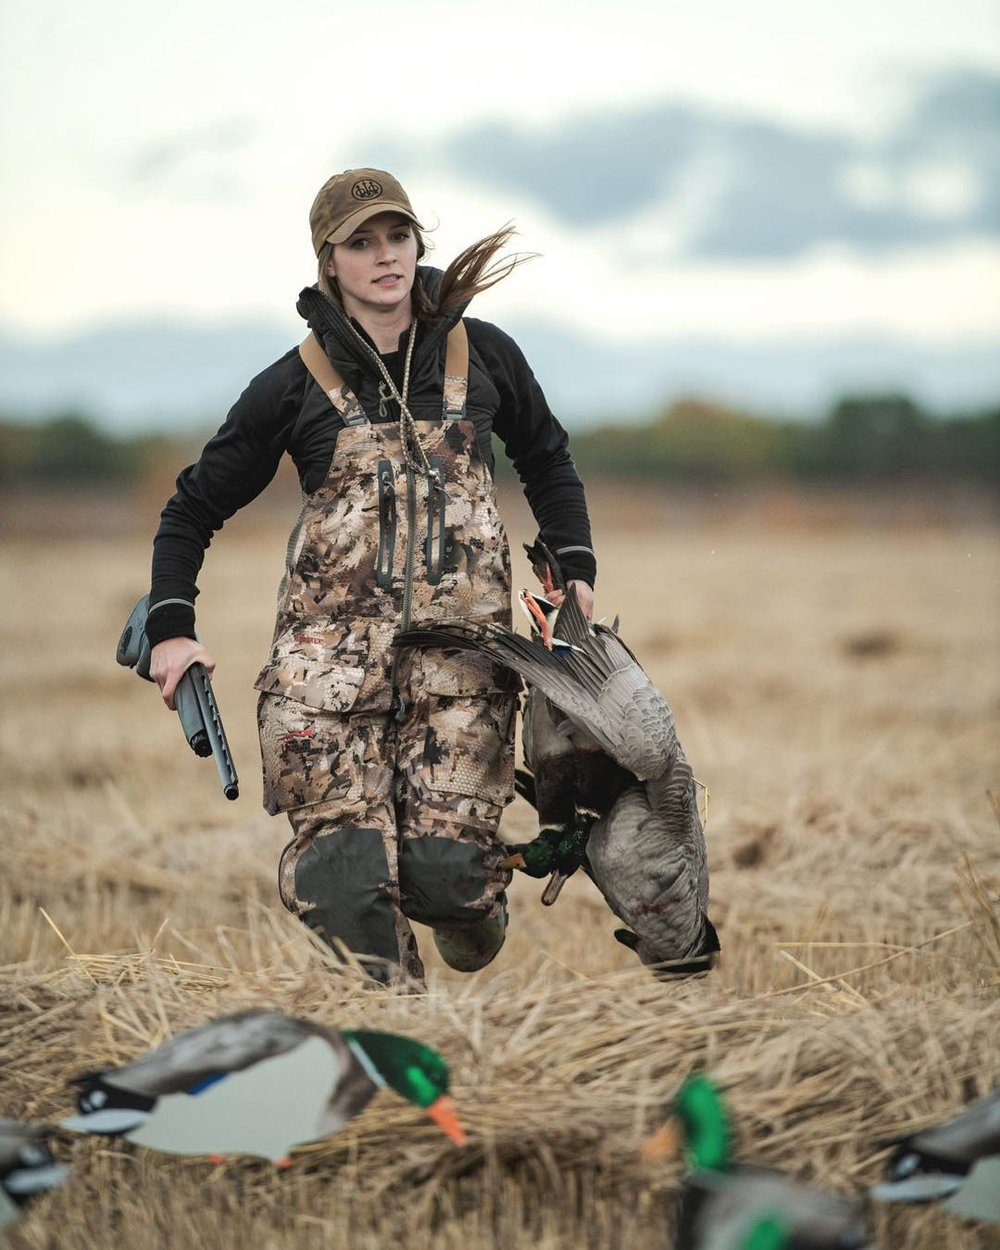 An avid duck hunter since she was a little girl. Cara was first was introduced to duck hunting from her dad who, for a short time, had a duck hunting guide business.